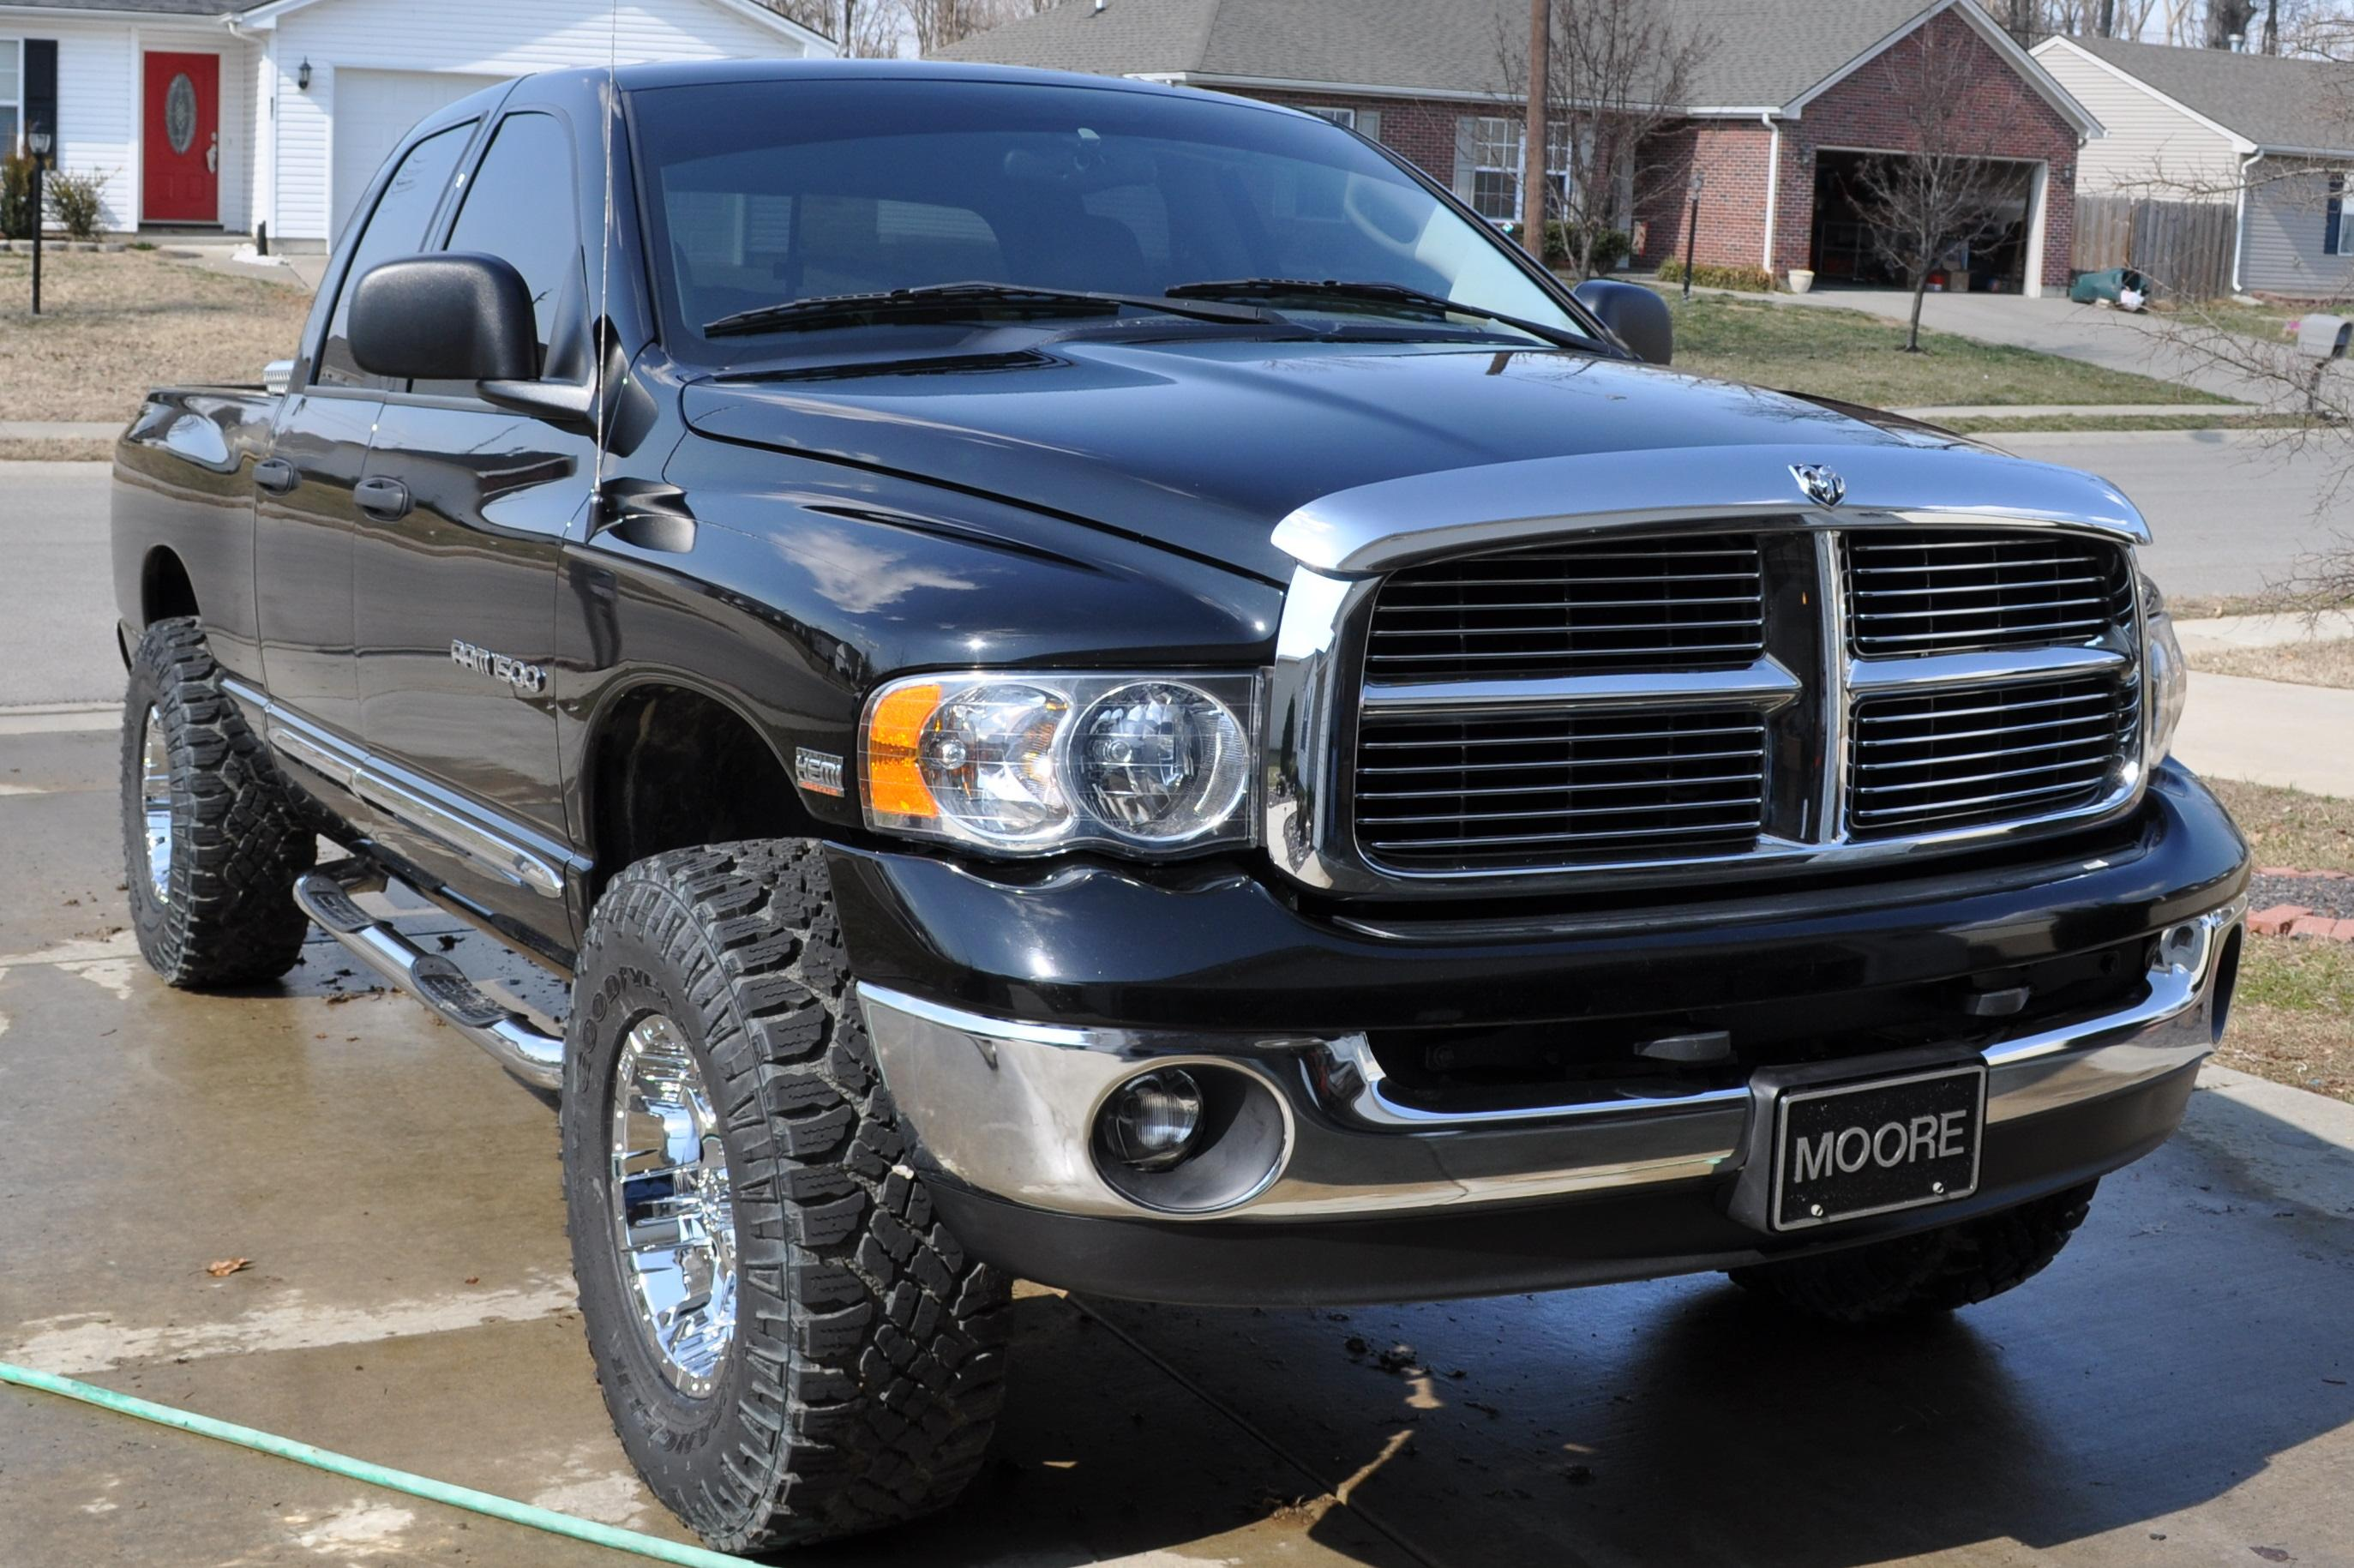 Typicalmale 2004 Dodge Ram 1500 Quad Cab Specs Photos